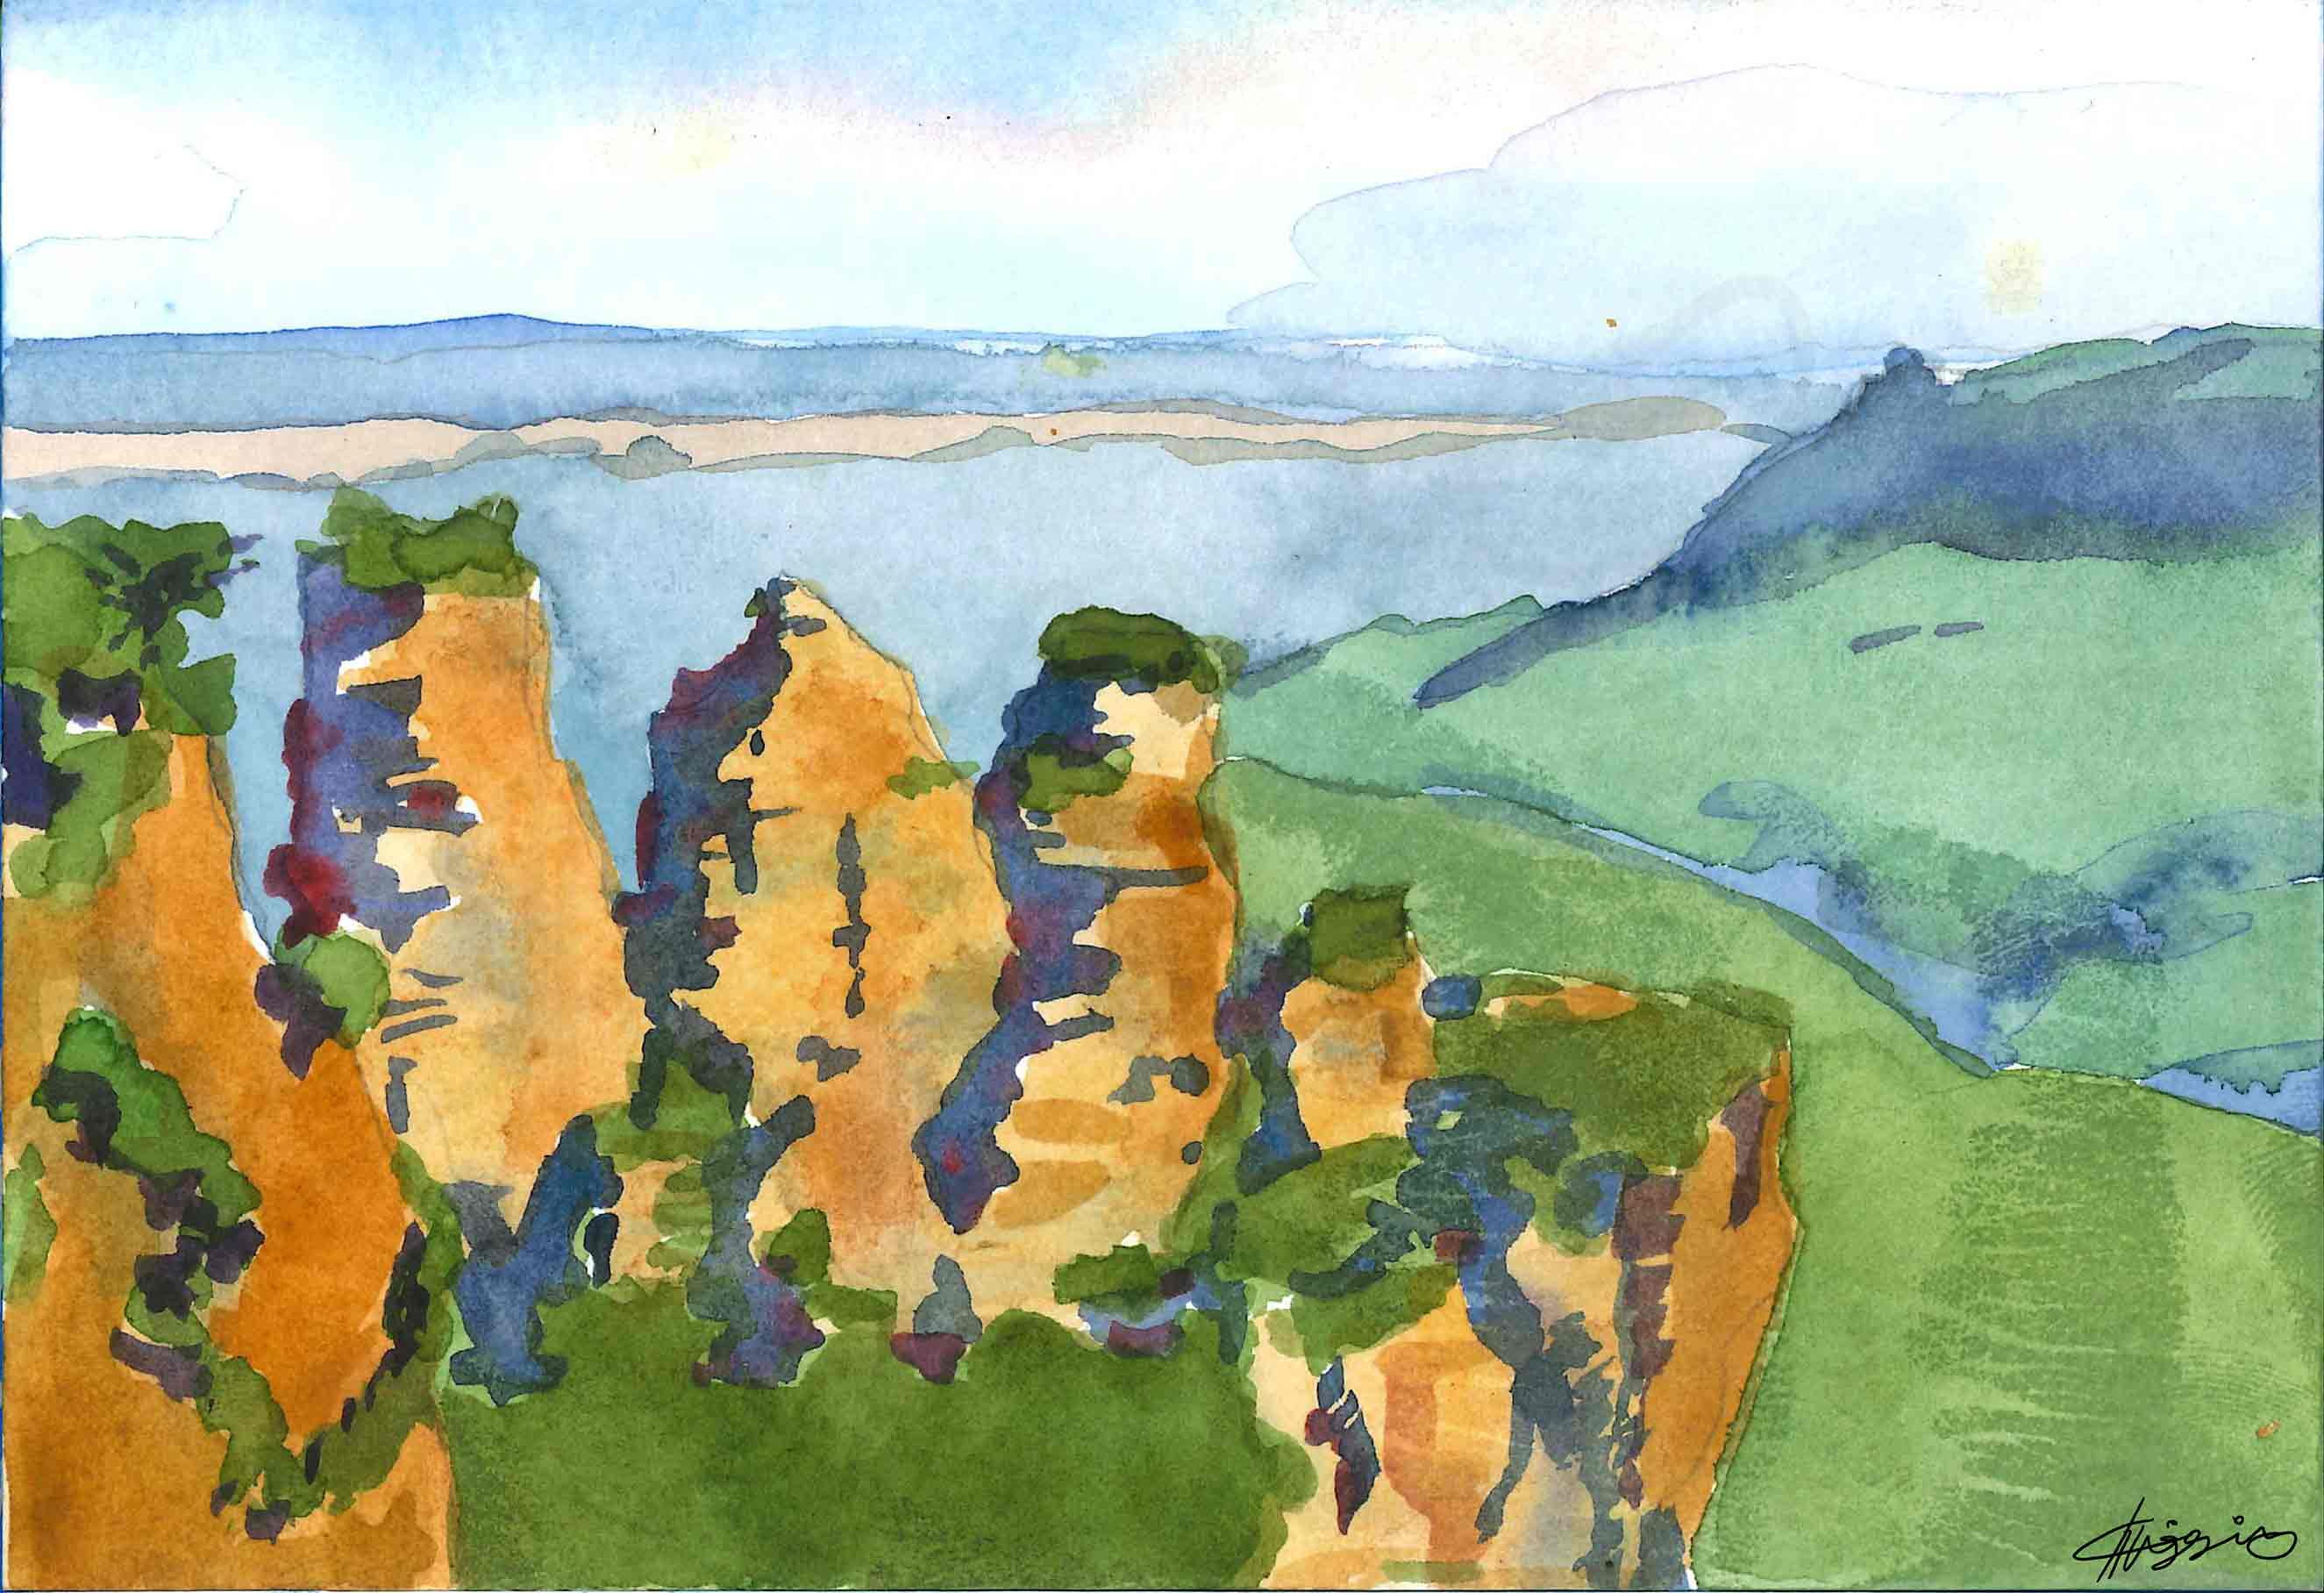 Watercolor study of the 3 sisters rock formation in the Blue Mountains, Australia